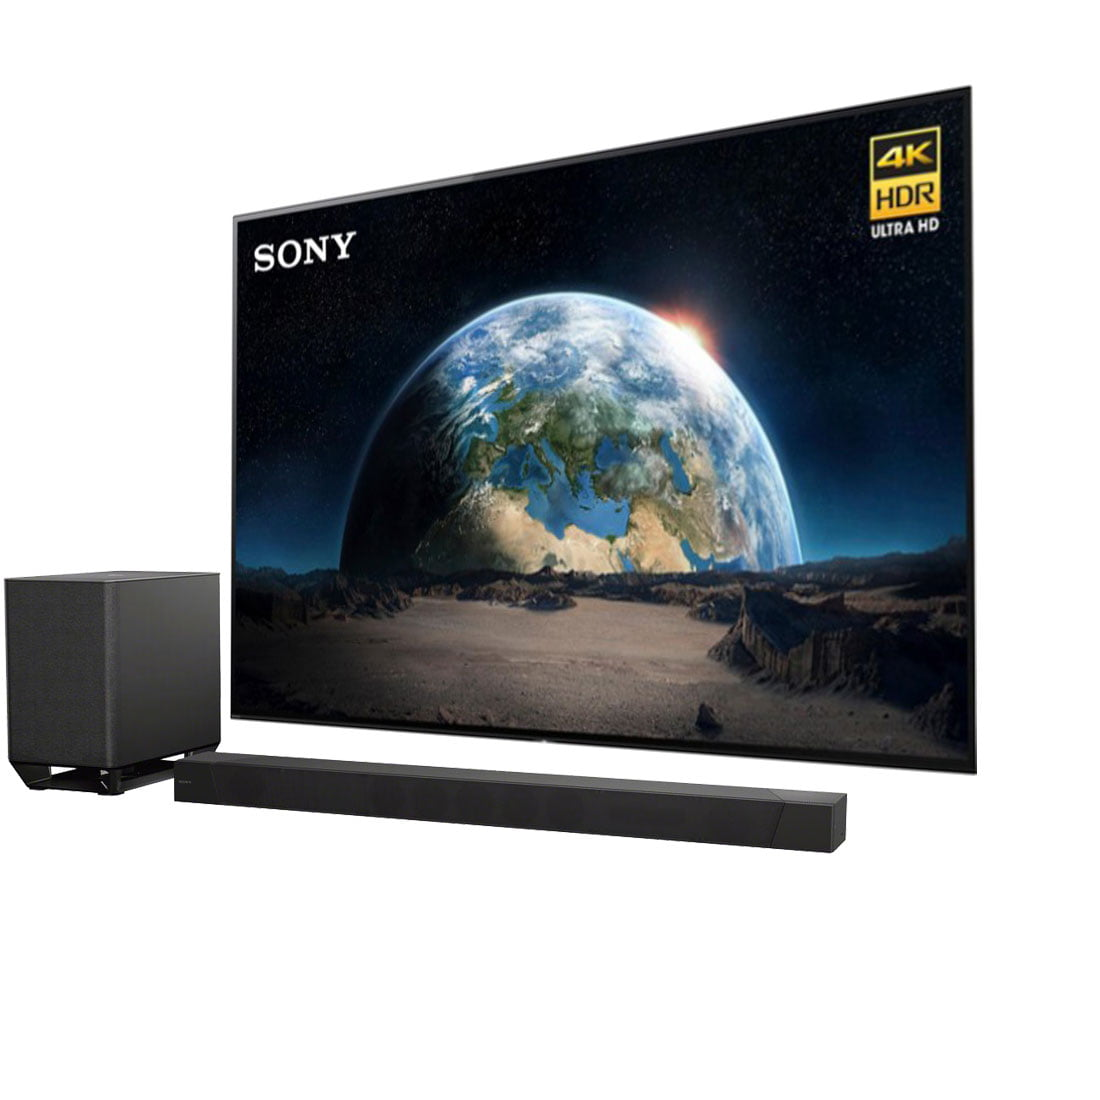 sony xbr 65a1e bravia oled 4k hdr smart tv w sony ht st5000 dolby atmos wireless bluetooth. Black Bedroom Furniture Sets. Home Design Ideas